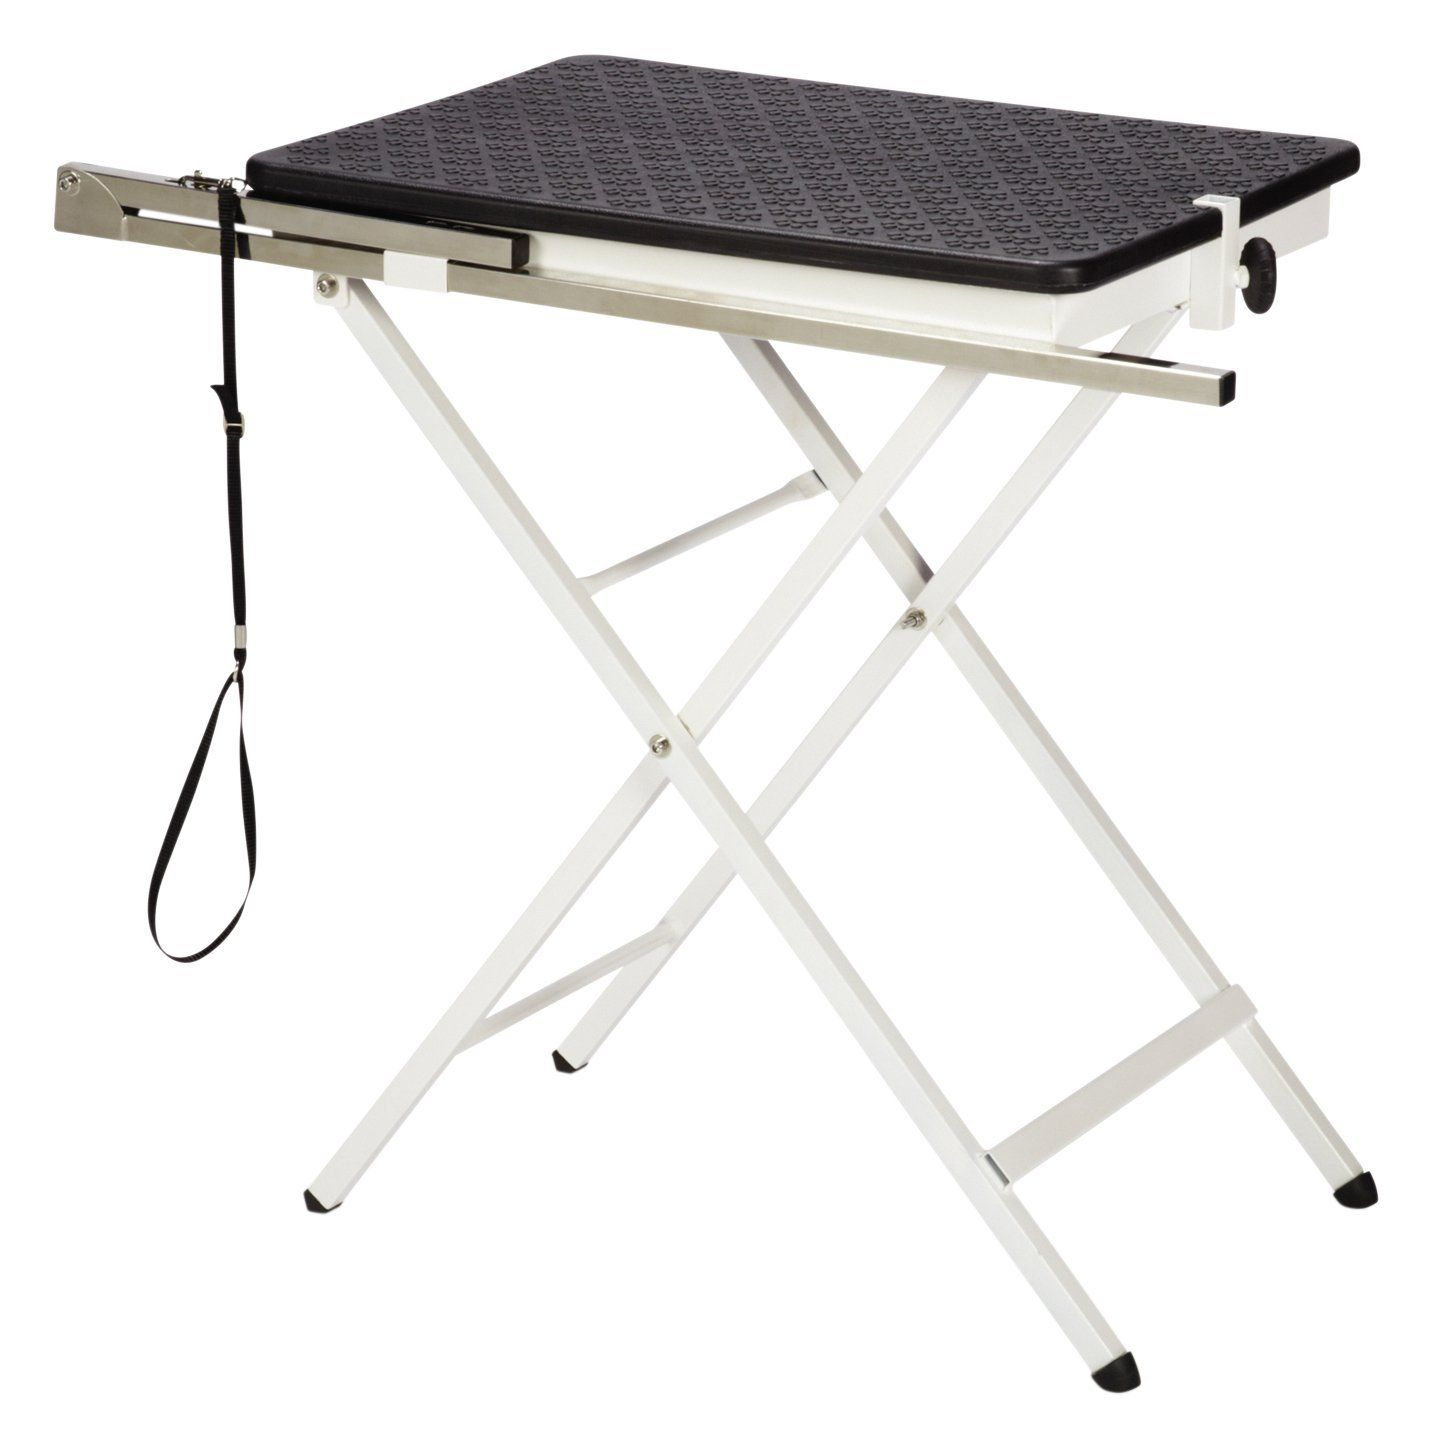 Master Equipment Steel Versa Competition Pet Grooming Table New And Awesome Dog Product Awaits You Dog Grooming Dog Grooming Supplies